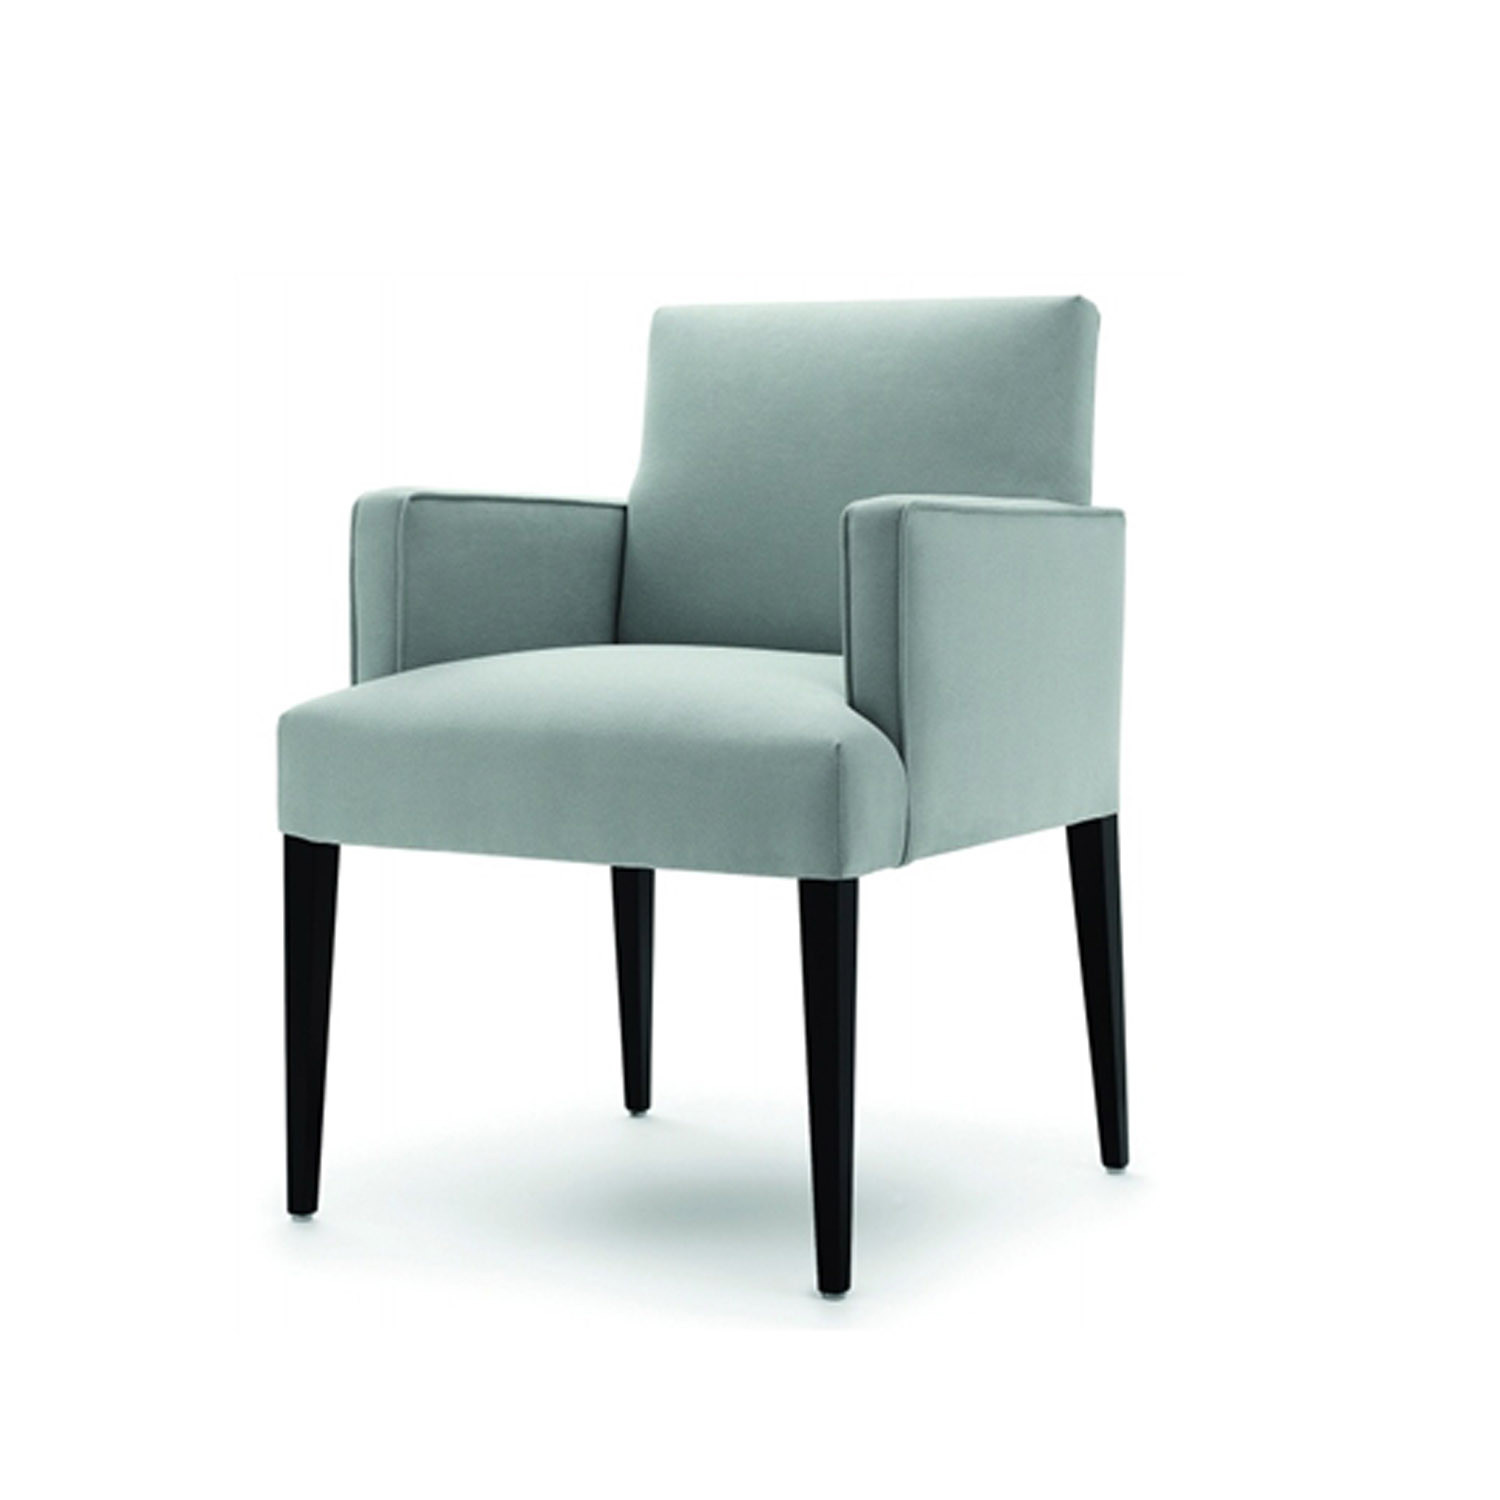 Diana Reception Armchair from Lyndon Design